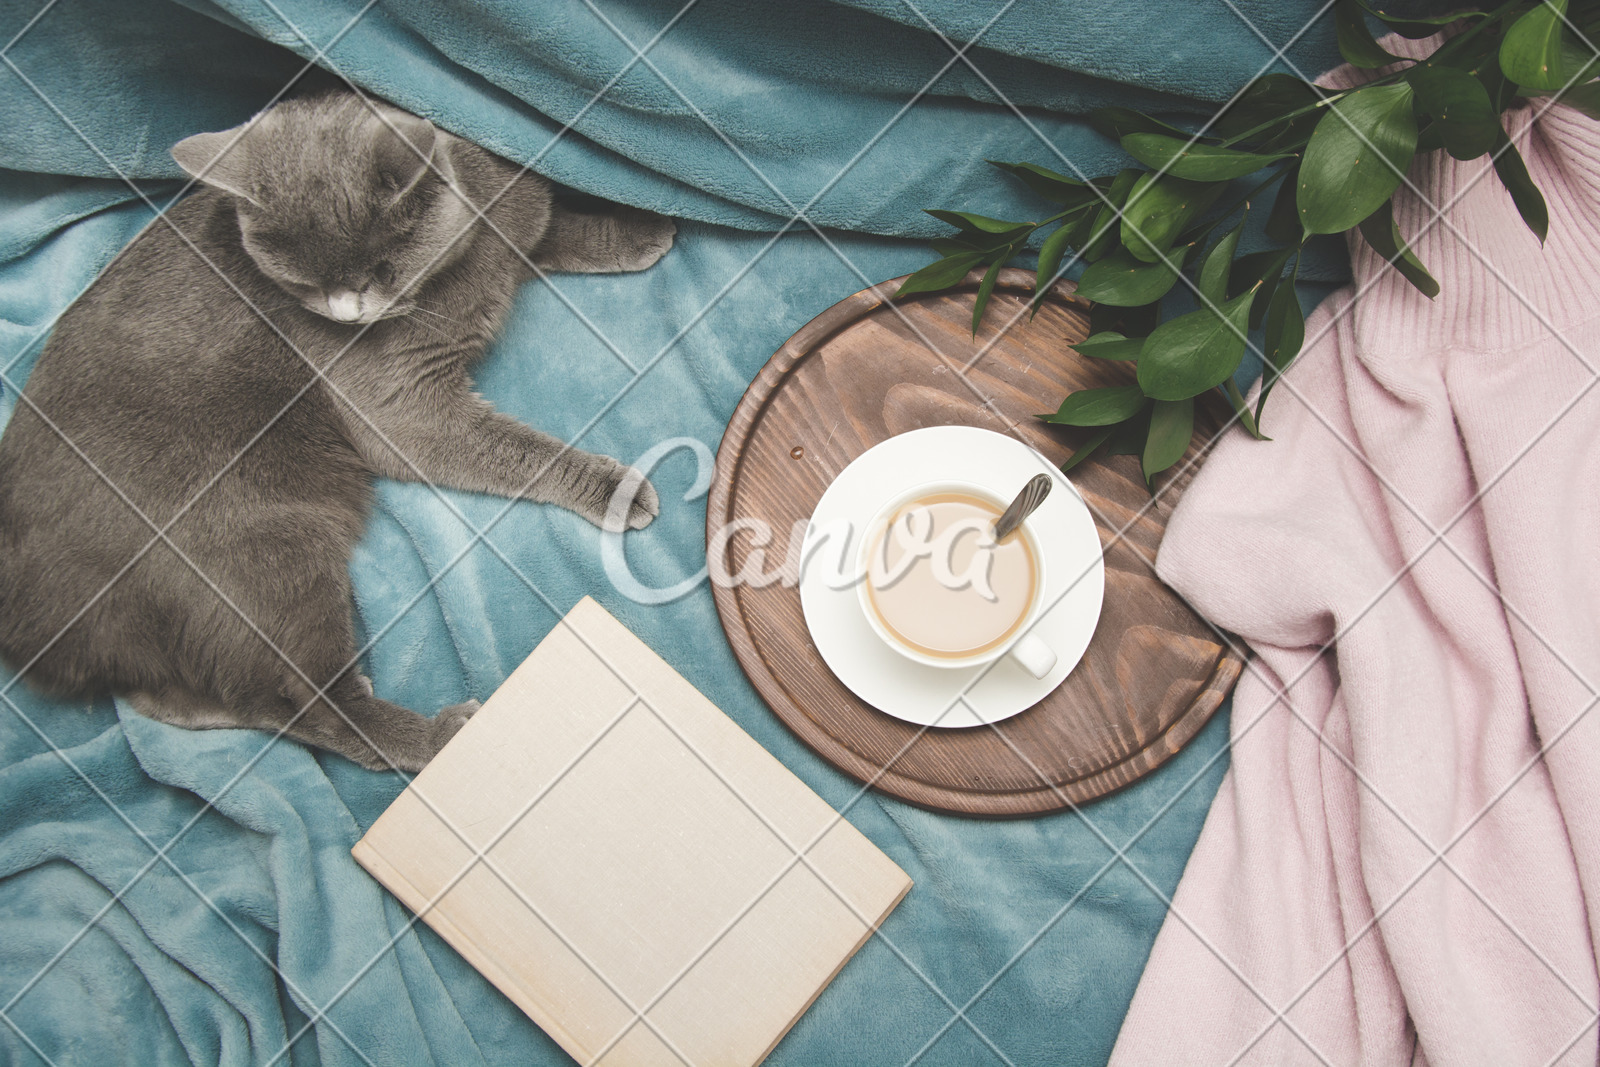 Hygge And Cozy Concept British Cute Cat Resting On Cozy